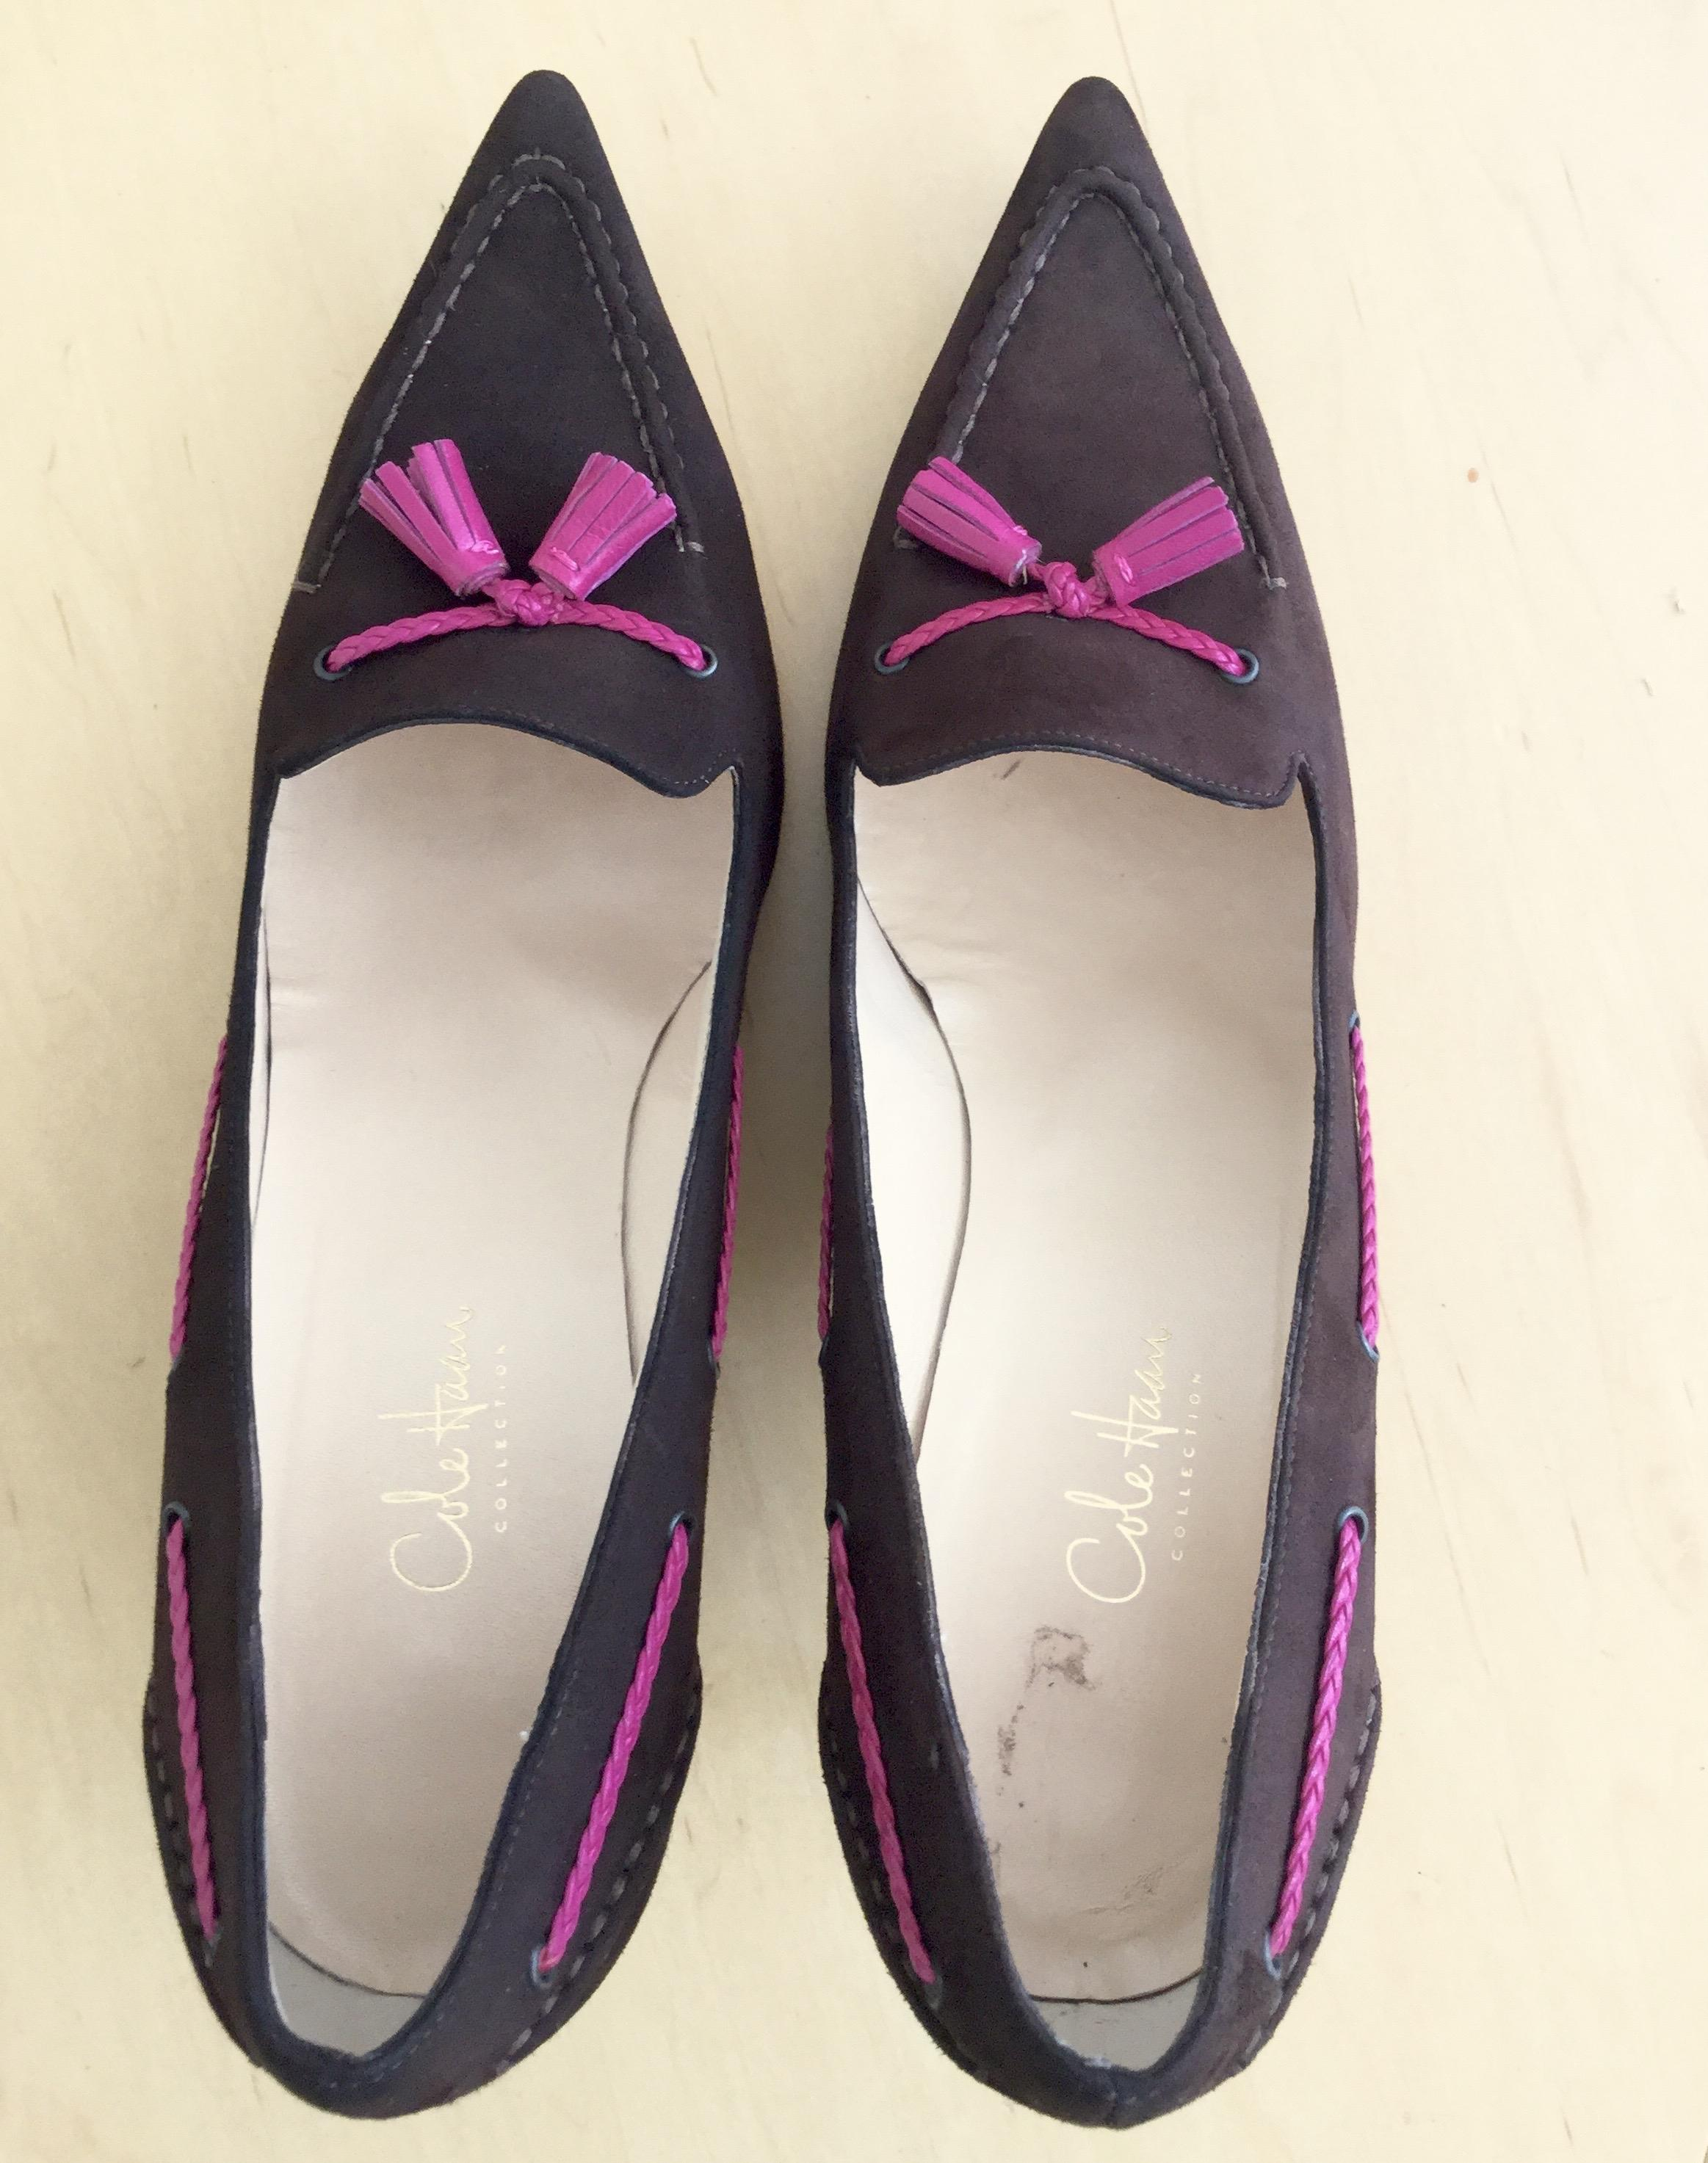 Cole Haan Italian * Brown Suede * Pink Braided * Tassel Heals European  Designer Pumps Size US 9 Regular (M, B) - Tradesy